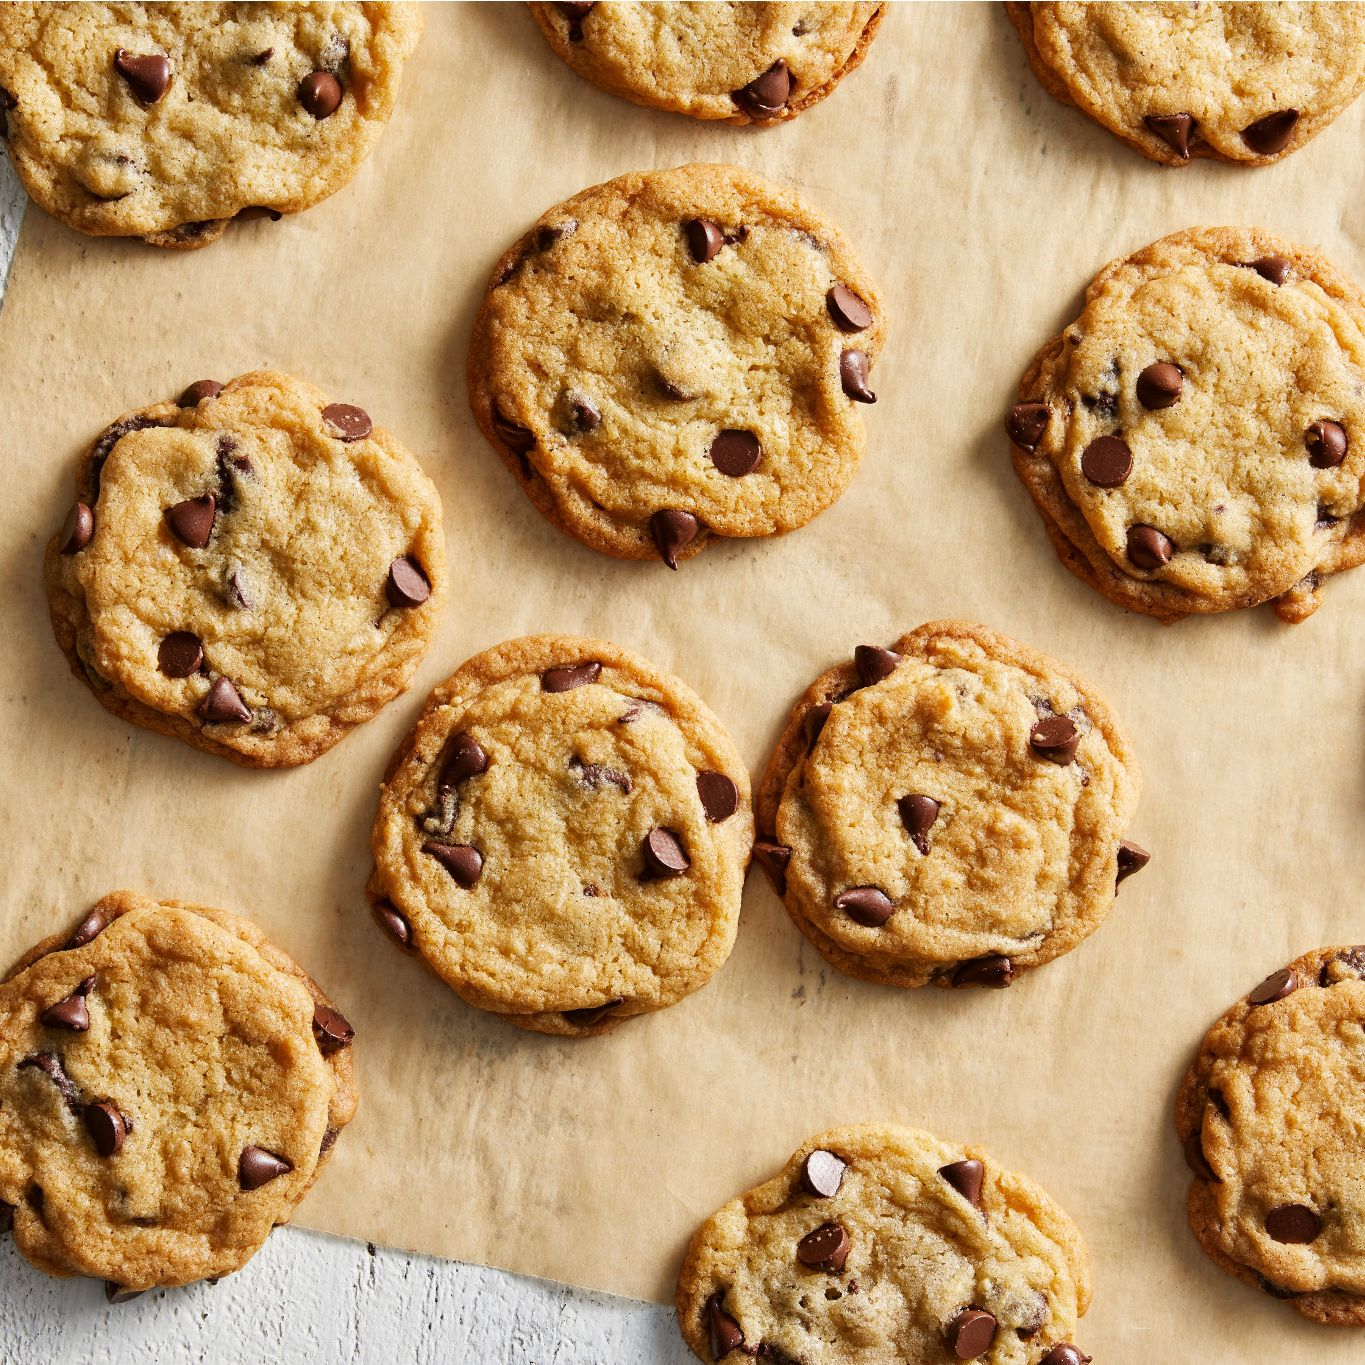 Vanilla_rich_chocolate_chip_cookies_004.jpg